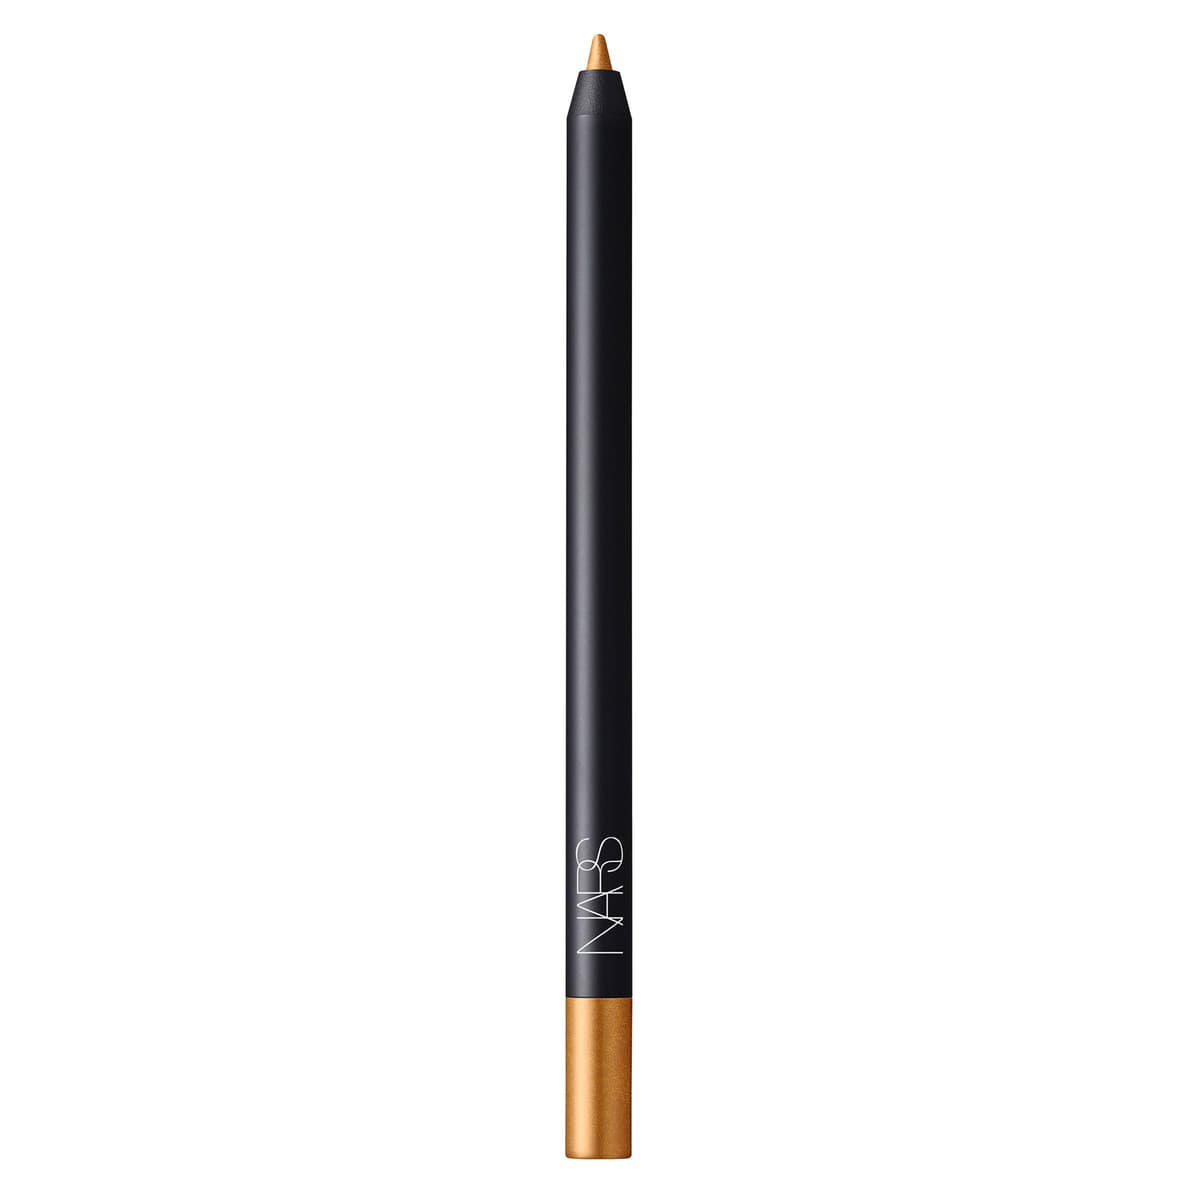 NARS Larger Than Life Long-Wear Eye Liner Rodeo Drive